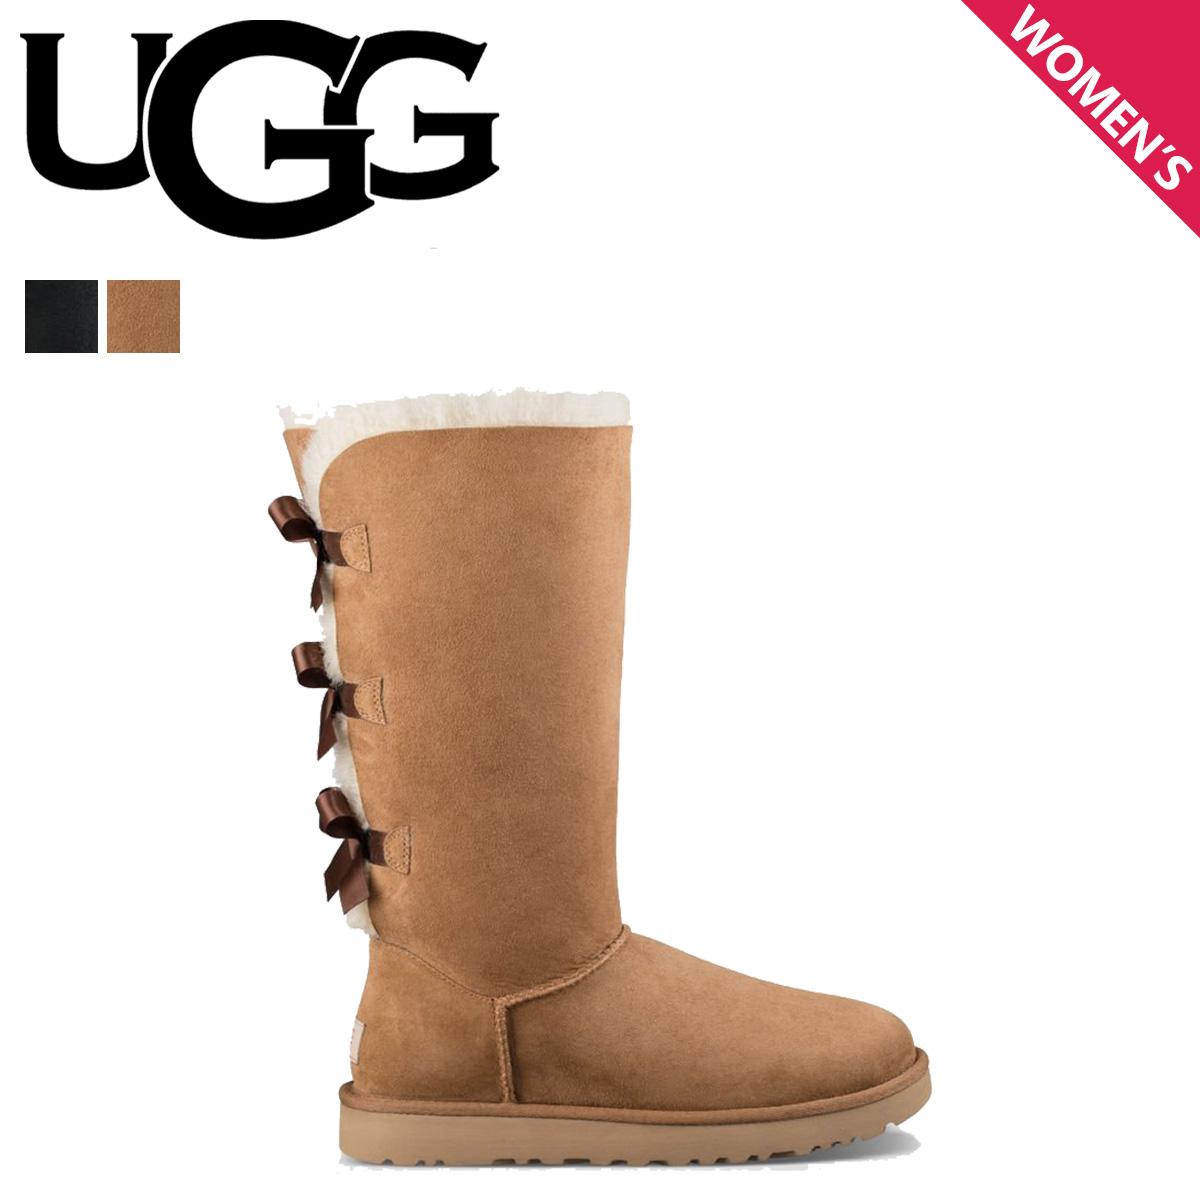 67dba0be6d6 アグ UGG mouton boots Bailey bow tie 2 WOMENS BAILEY BOW TALL II 1016434  Lady's